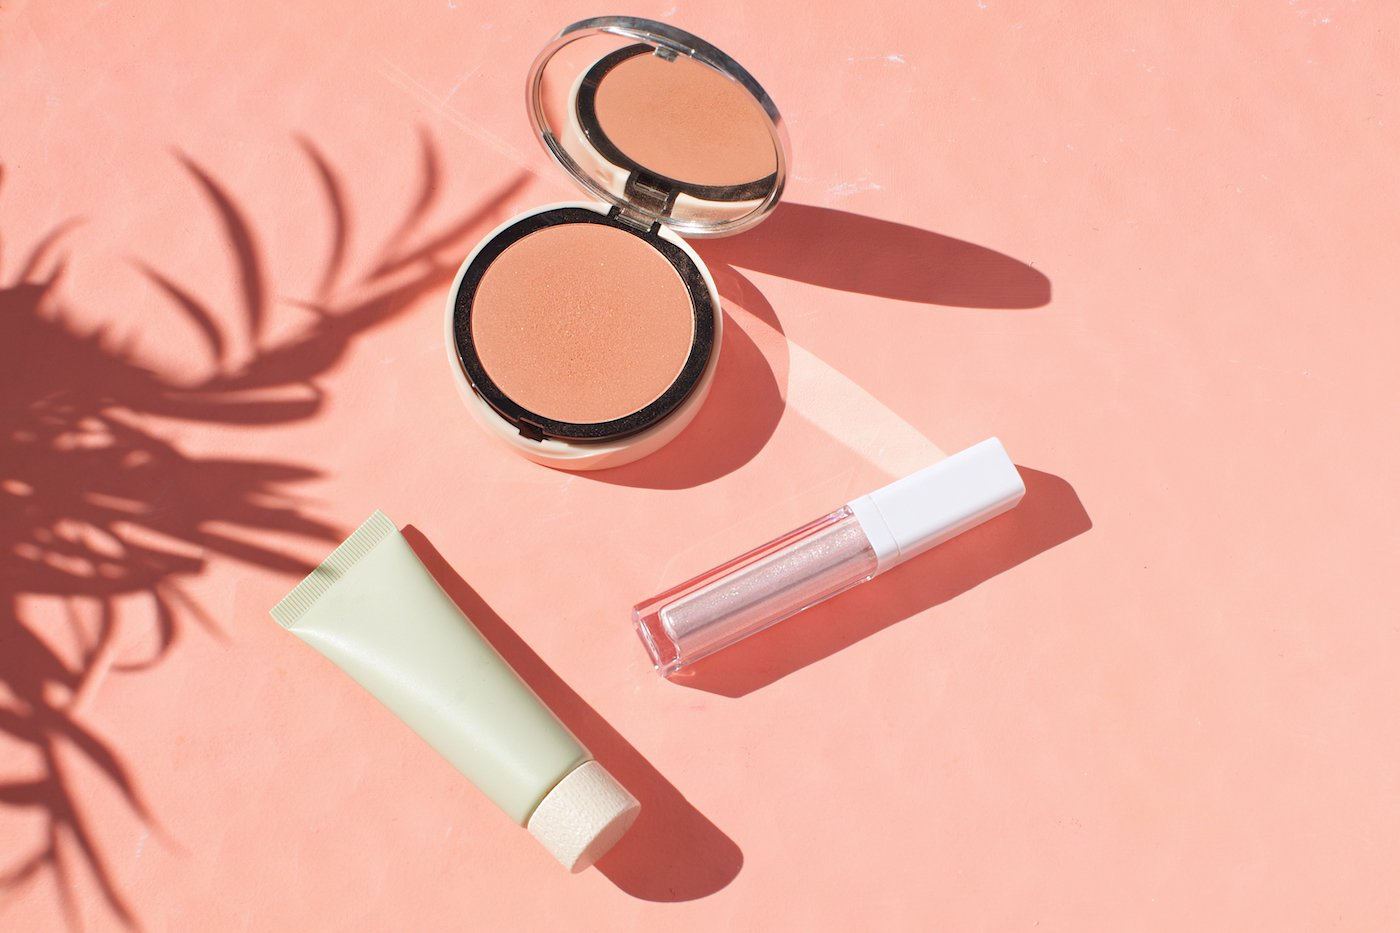 The best SPF makeup 2020 that makes sun protection easy